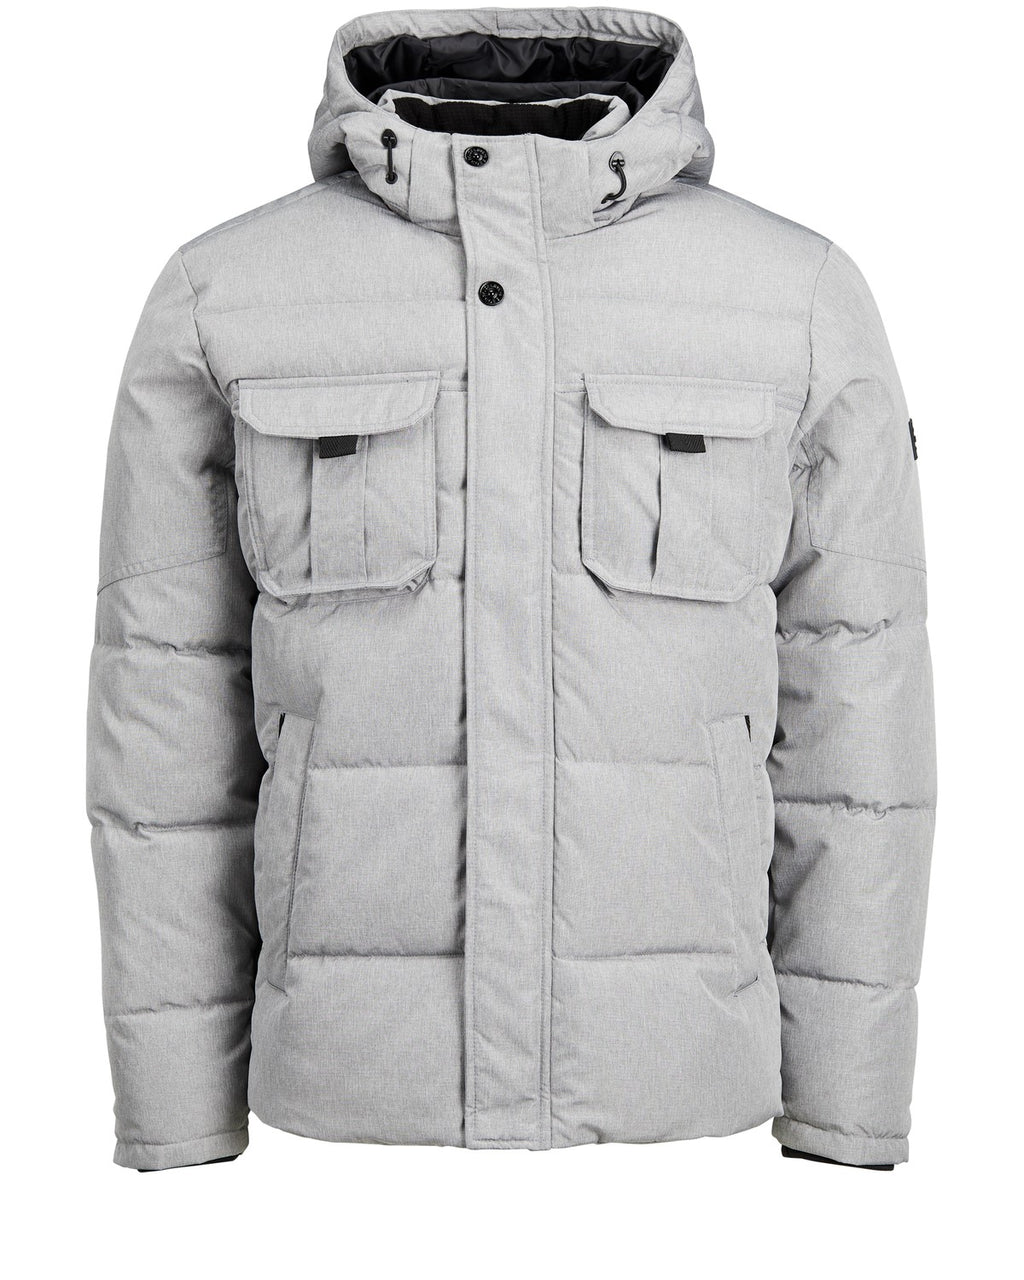 Manteau gris clair Will